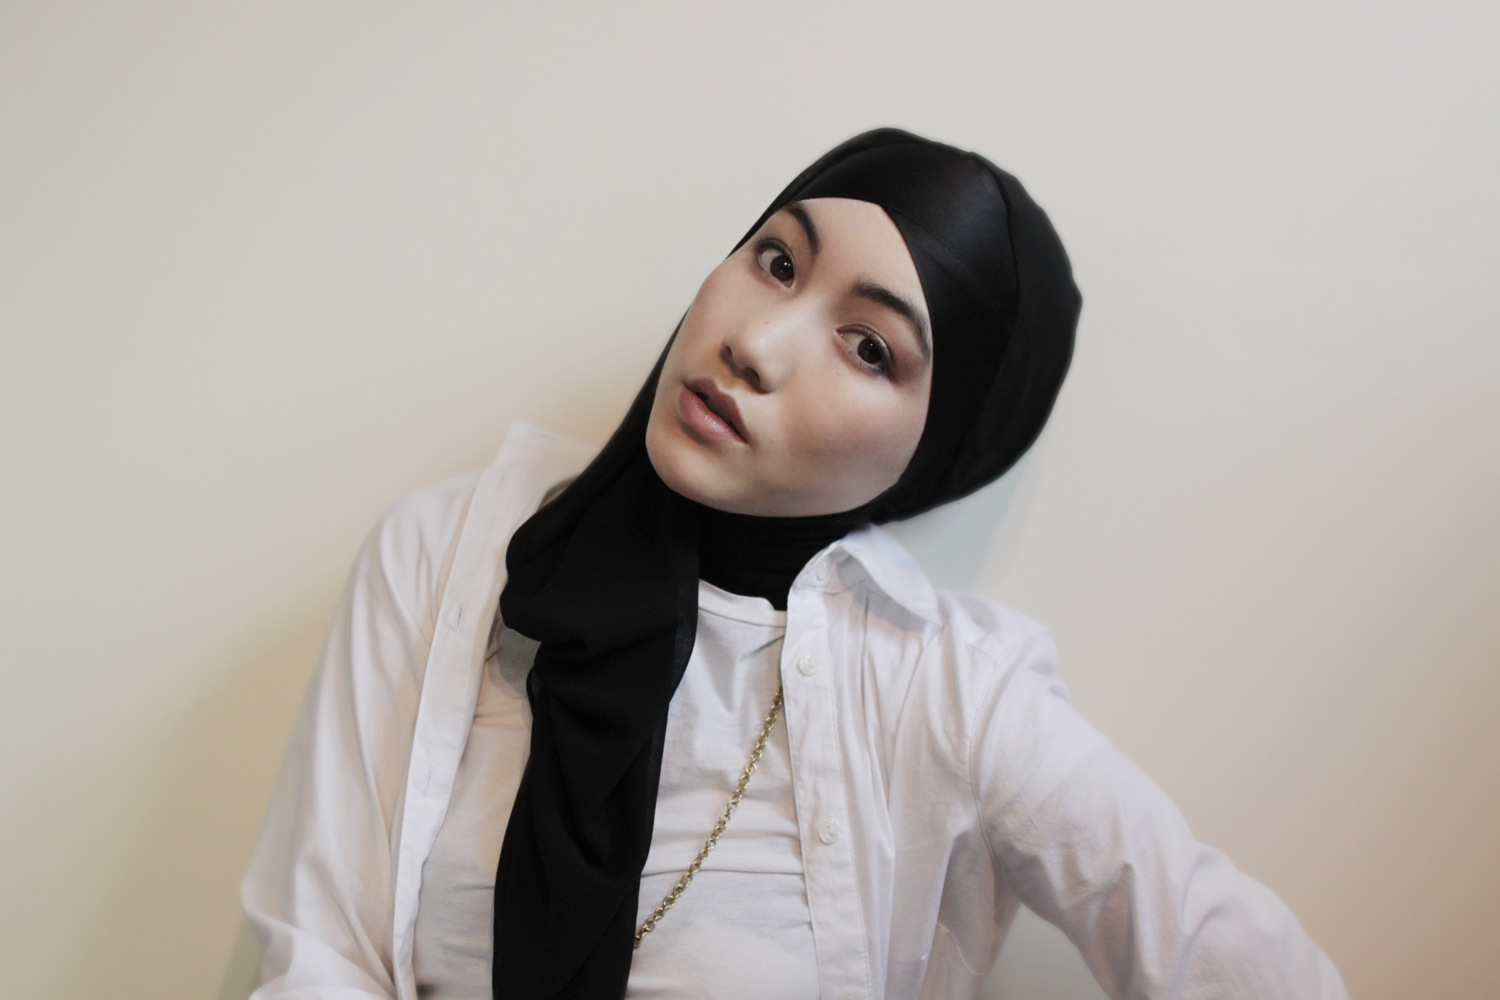 Tutorial Jilbab Segi Empat Hana Tajima Blog Video Tutorial